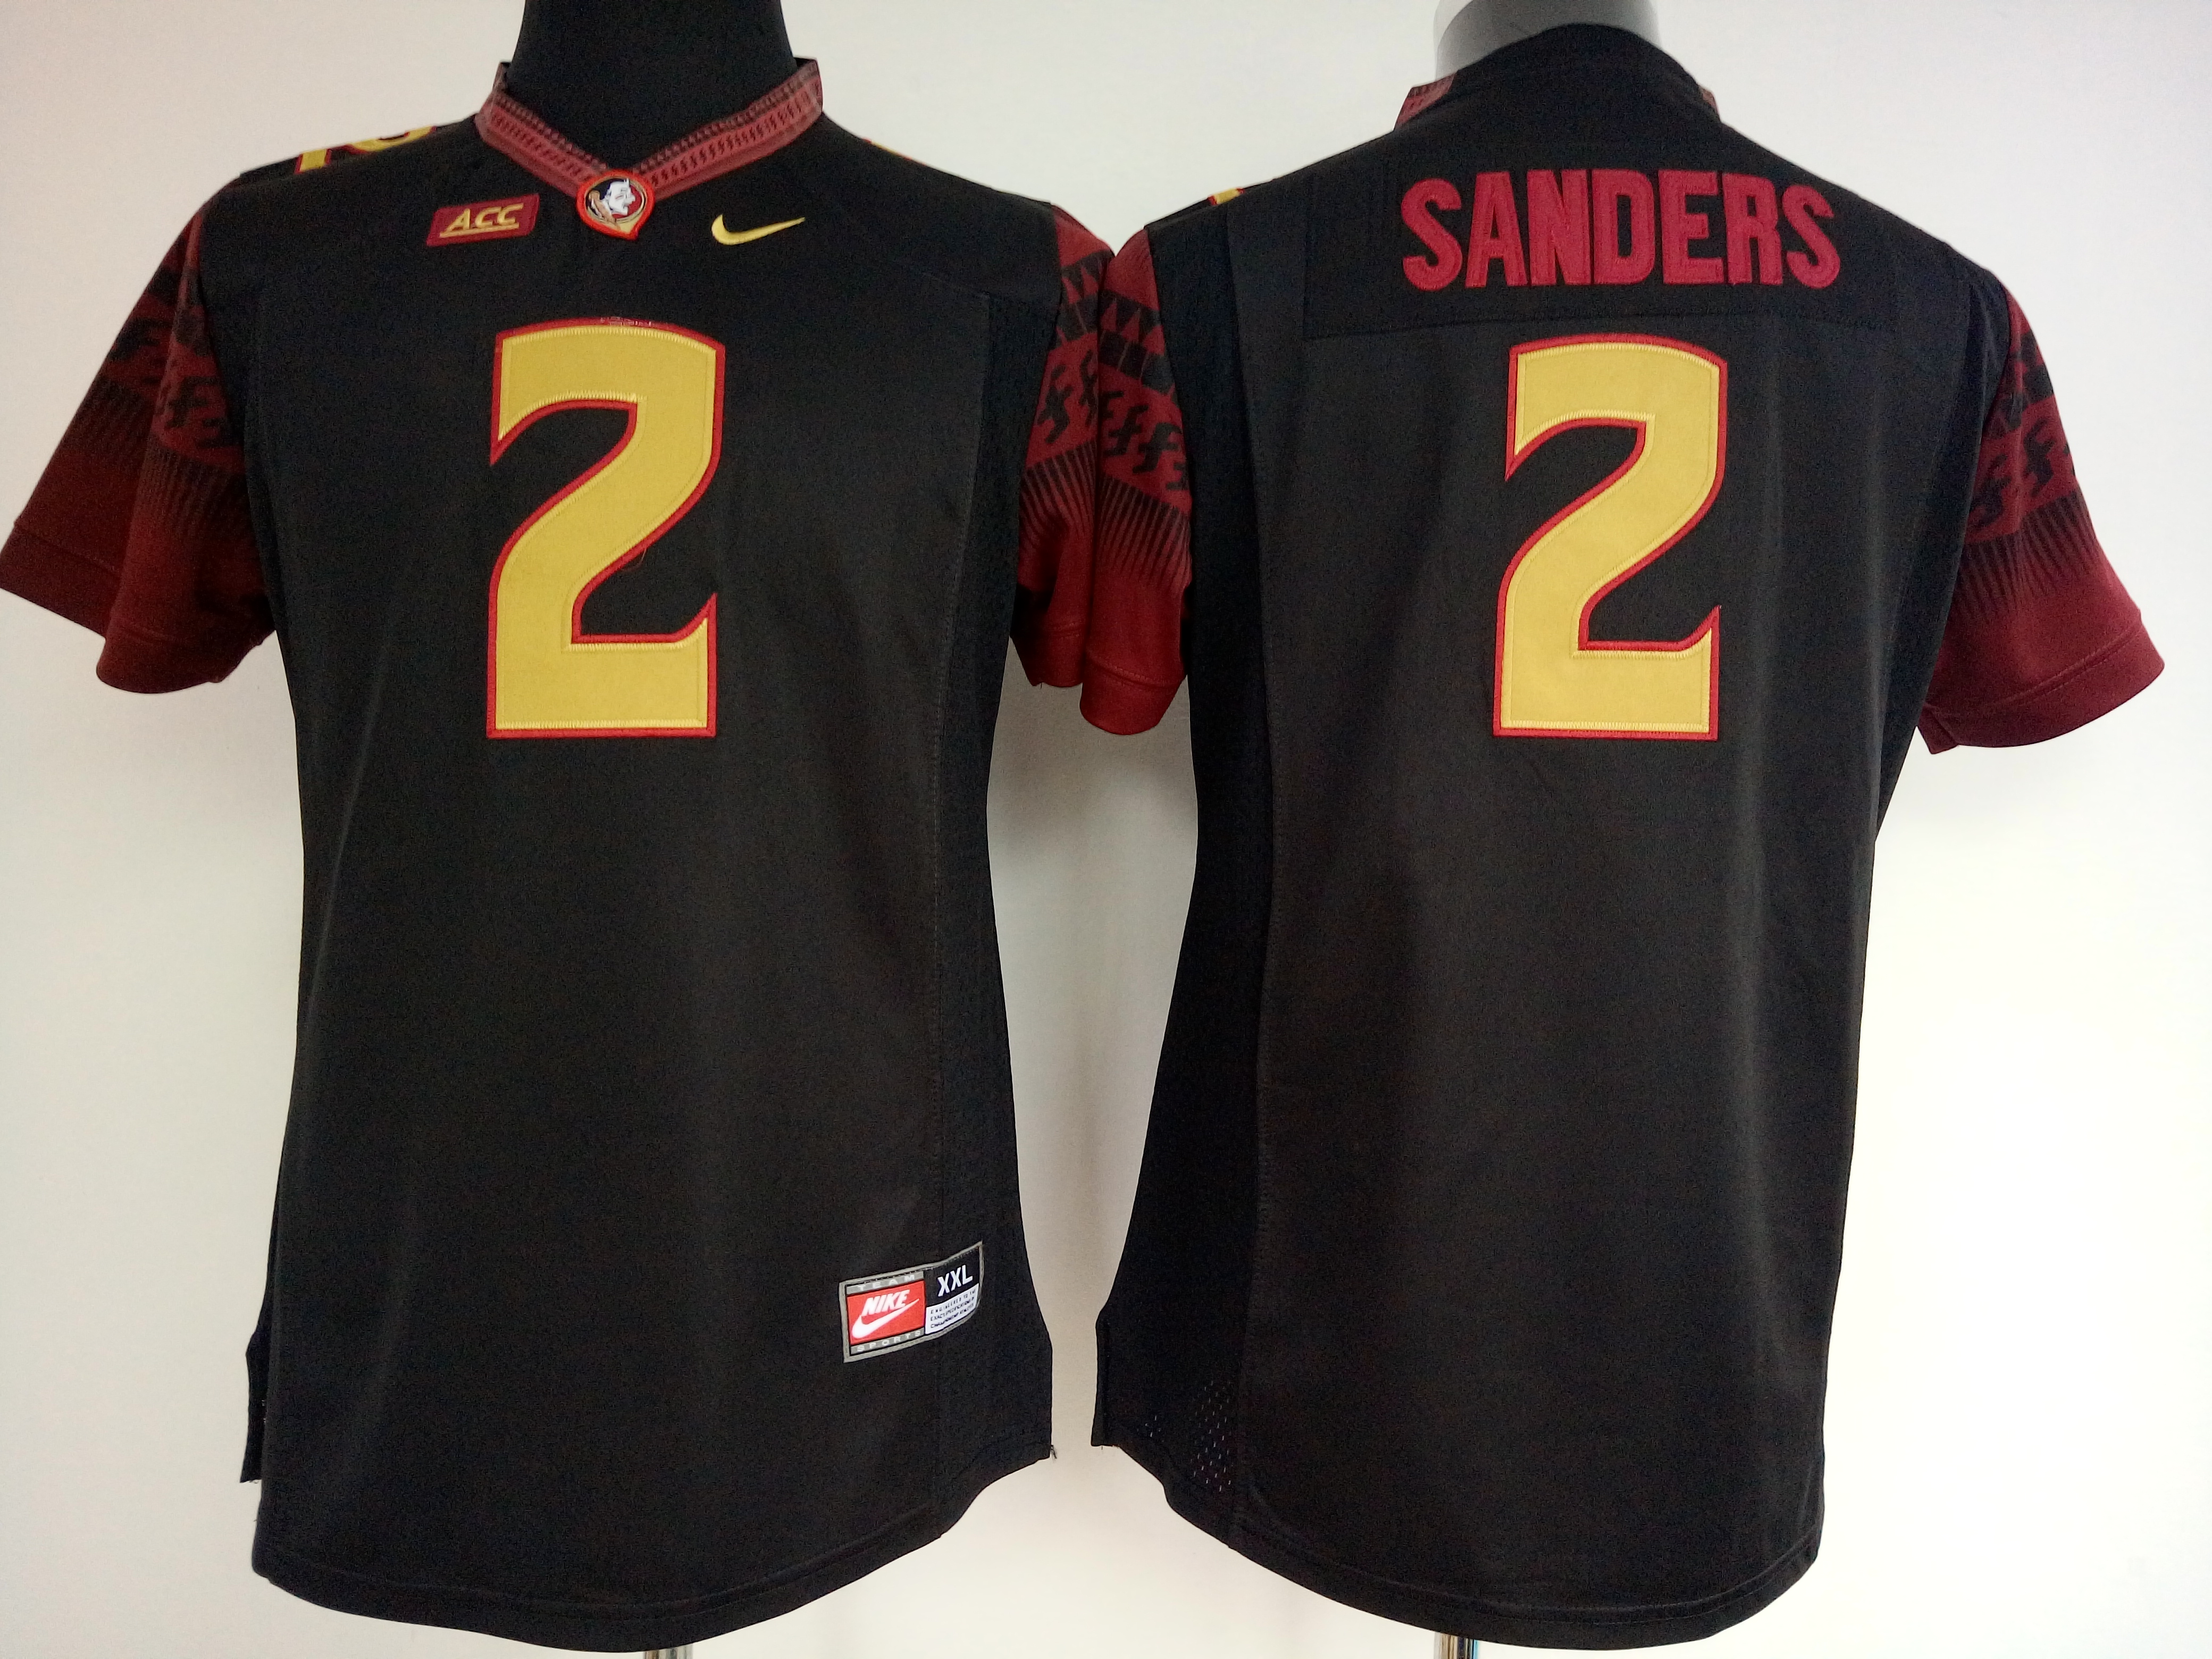 NCAA Womens Florida State Seminoles Black 2 Sanders jerseys